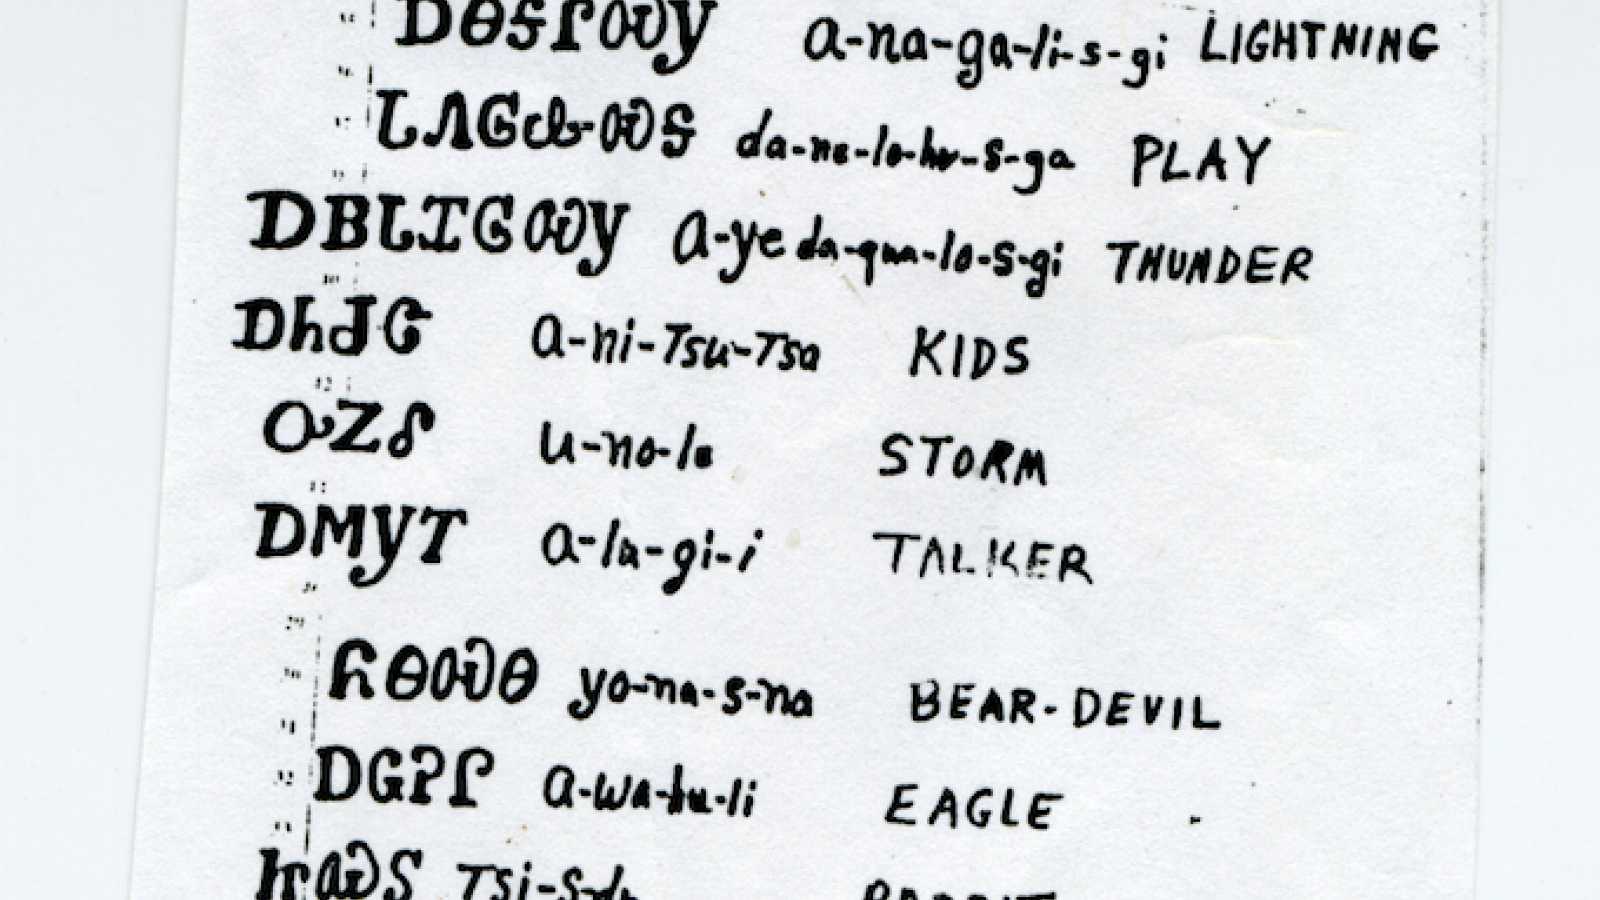 List of Cherokee words, their pronunciation, and English translations